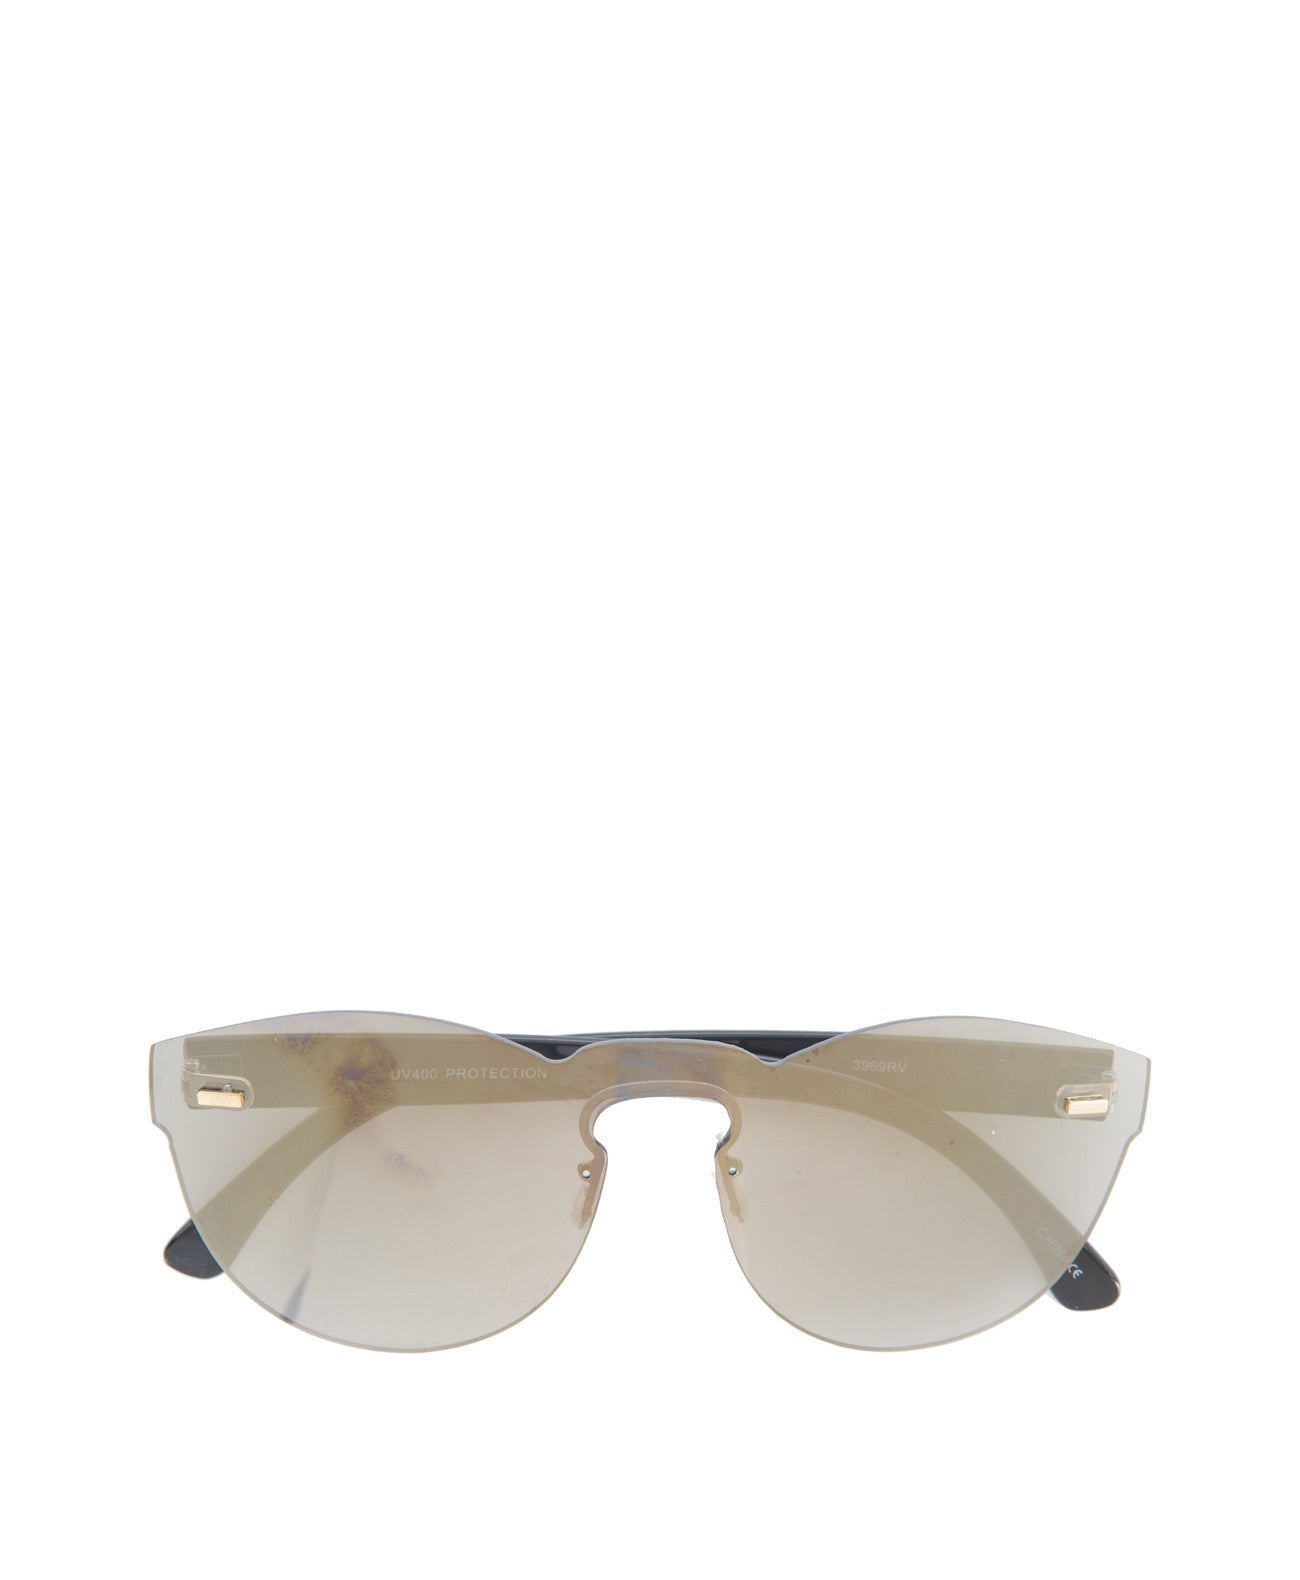 Beka Flat Mirrored Sunglasses - Koko & Palenki